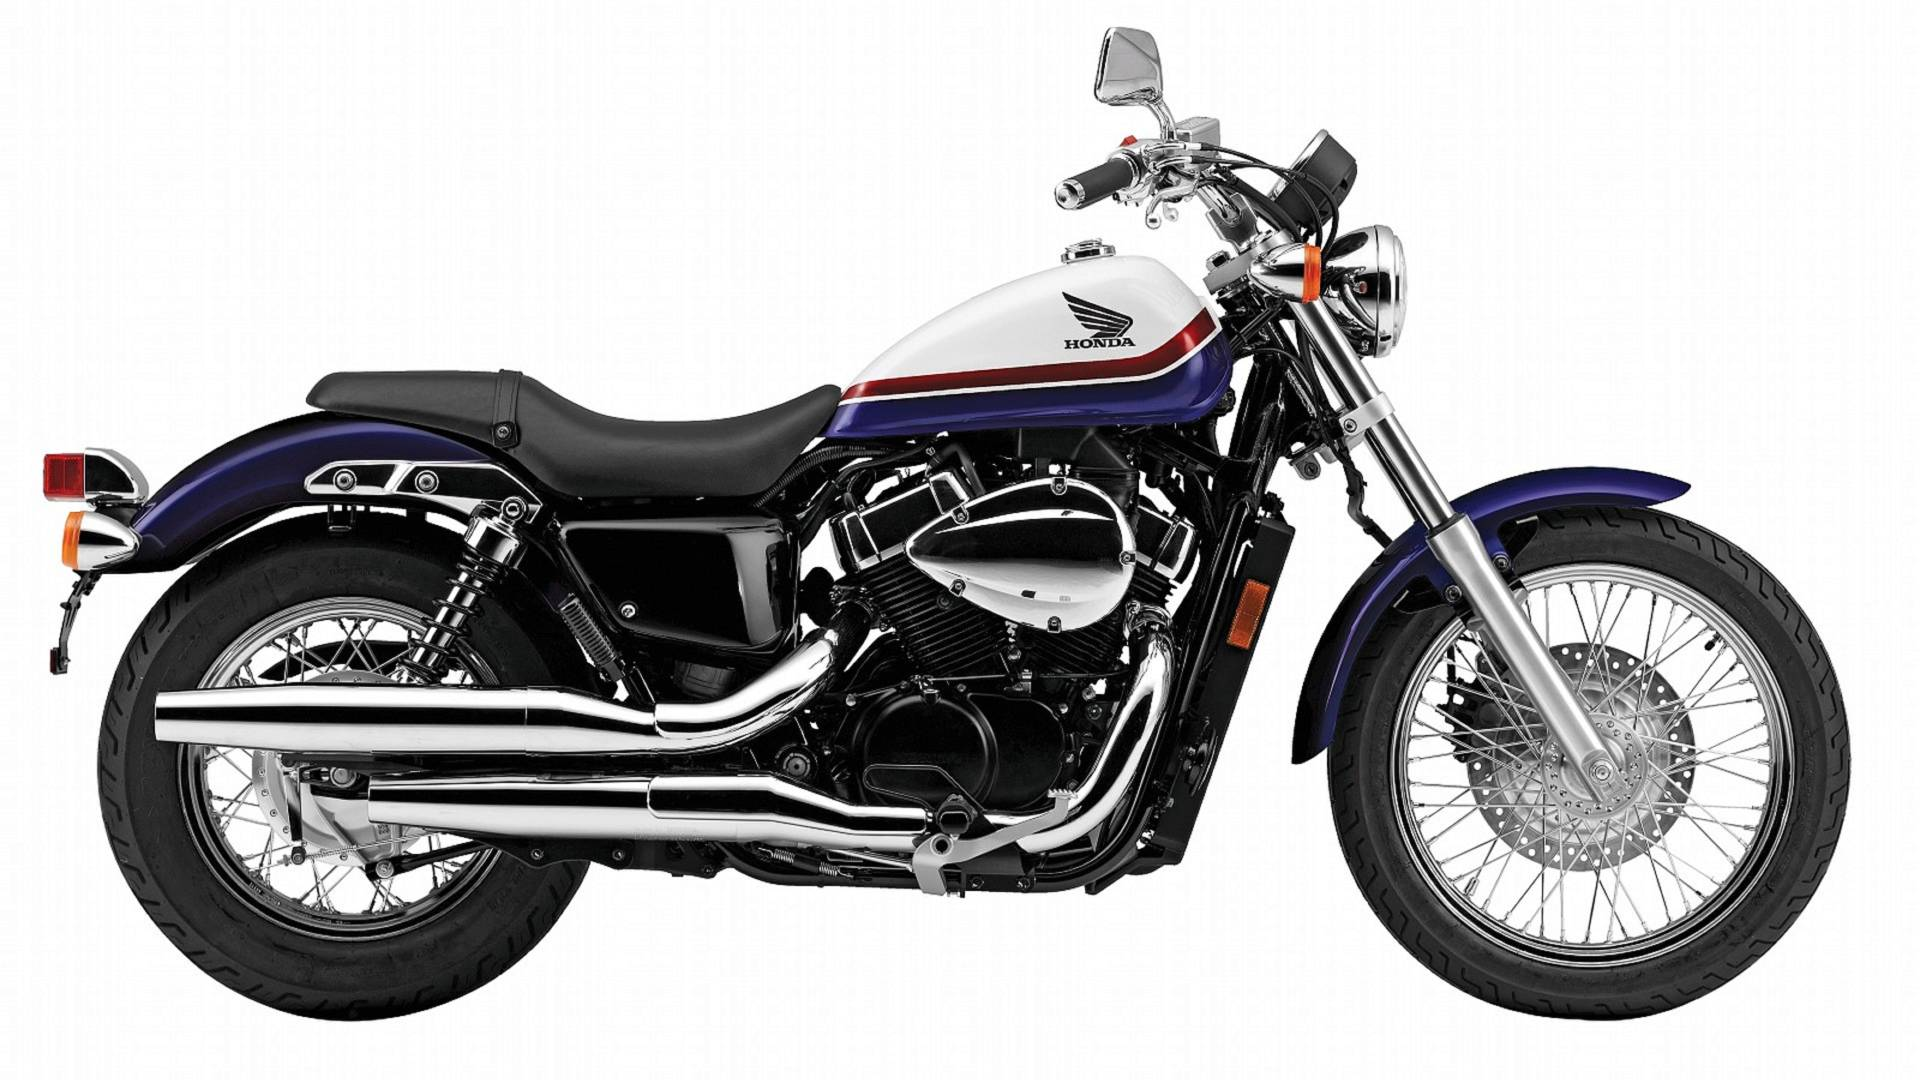 2011 Honda Shadow Rs Proud To Be A Japanese Bonneville Rival